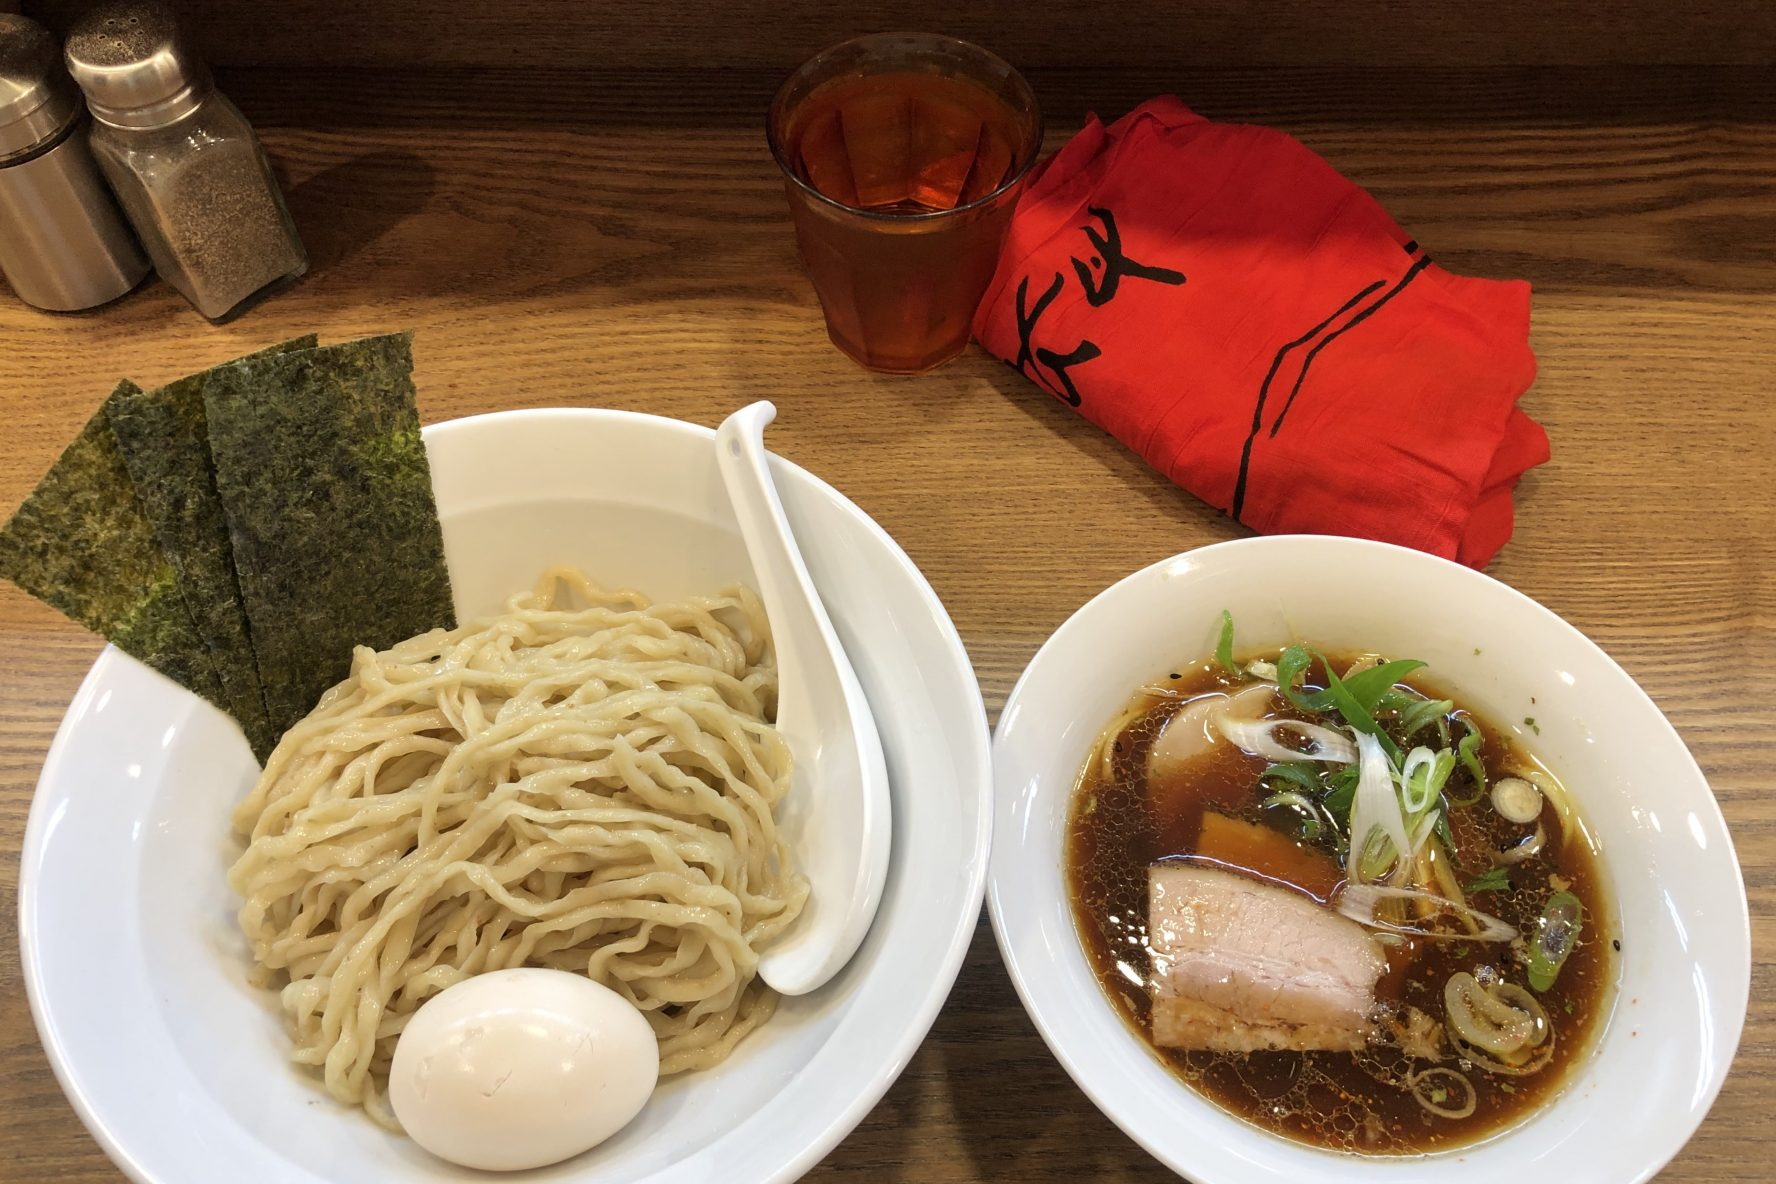 Tsukemen at Yama to ki